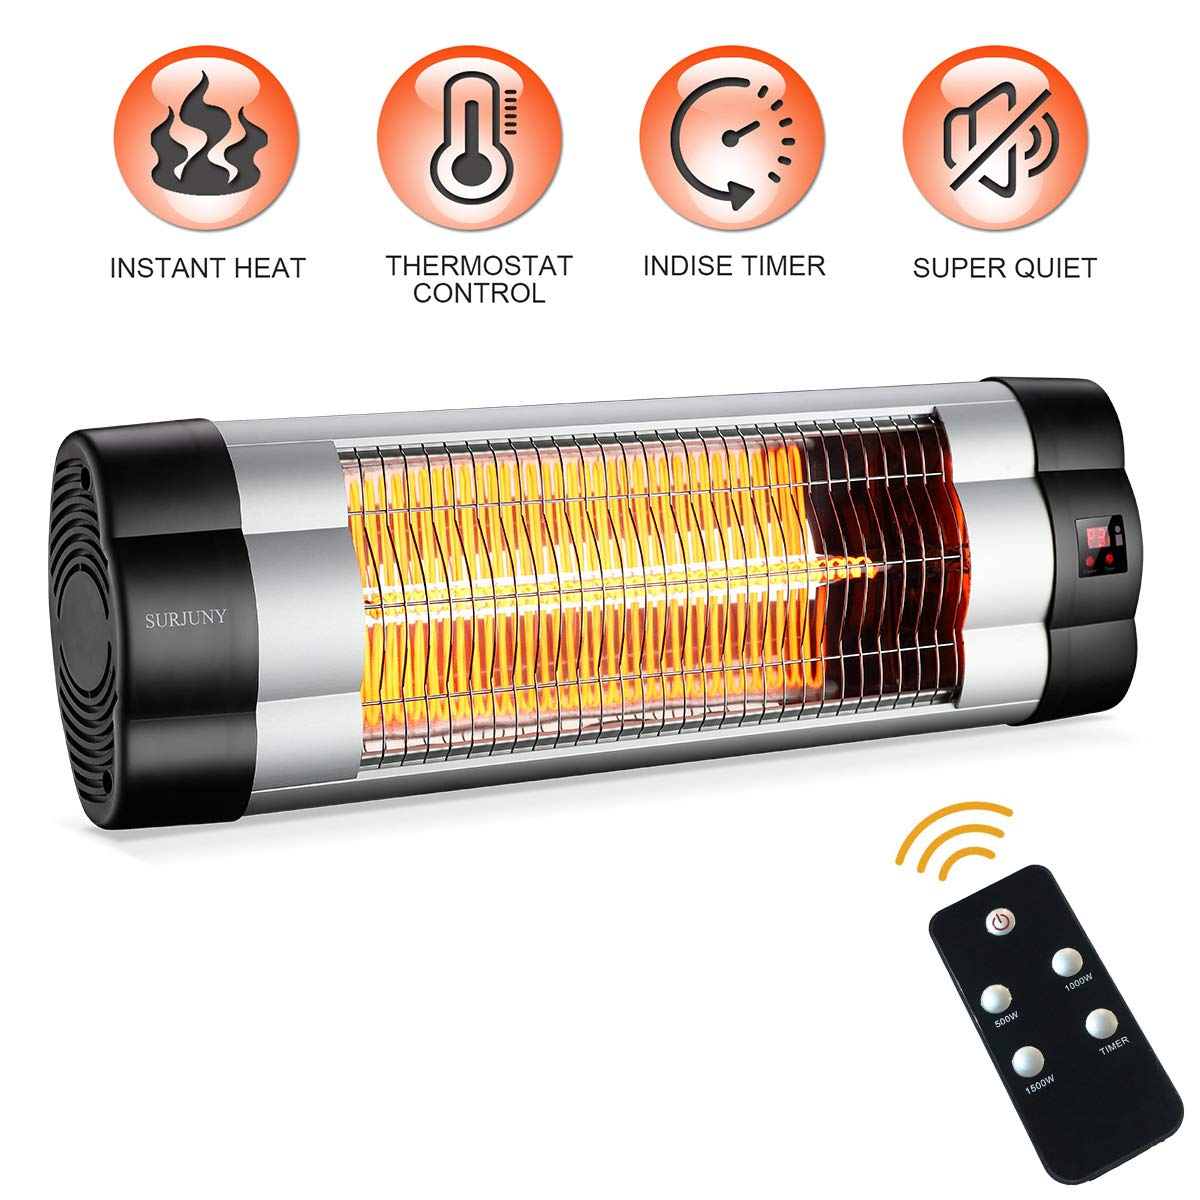 SURJUNY Patio Heater, Electric Wall-Mounted Outdoor Heater with LCD Display, Indoor Outdoor Infrared Heater, 1500W Adjustable Thermostat, 3 Seconds Instant Warm, Waterproof IP34 Rated, W01